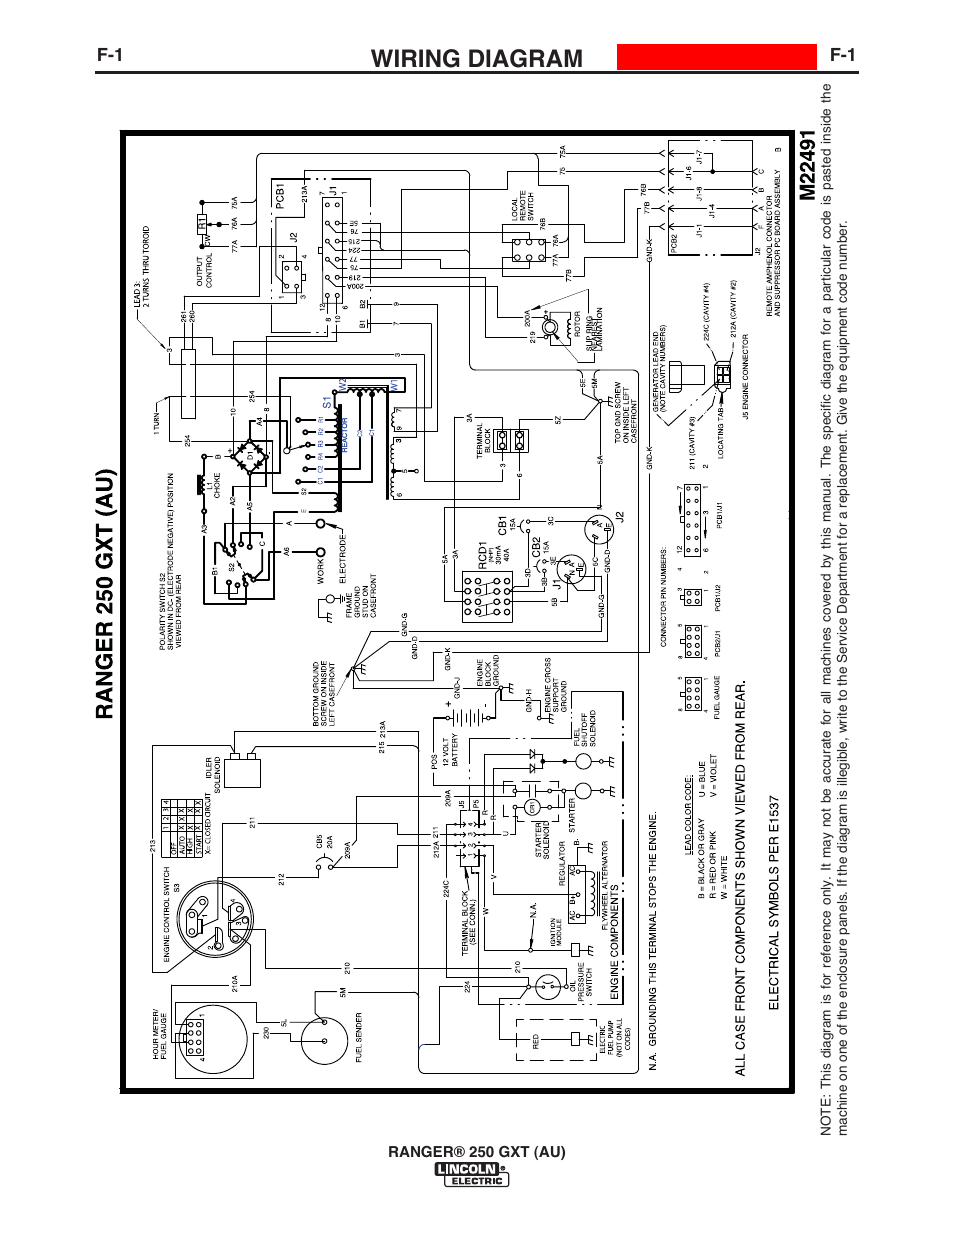 medium resolution of lincoln ranger 9 wiring diagram wiring diagram schematics basic starter wiring diagram 1999 lincoln wiring diagram